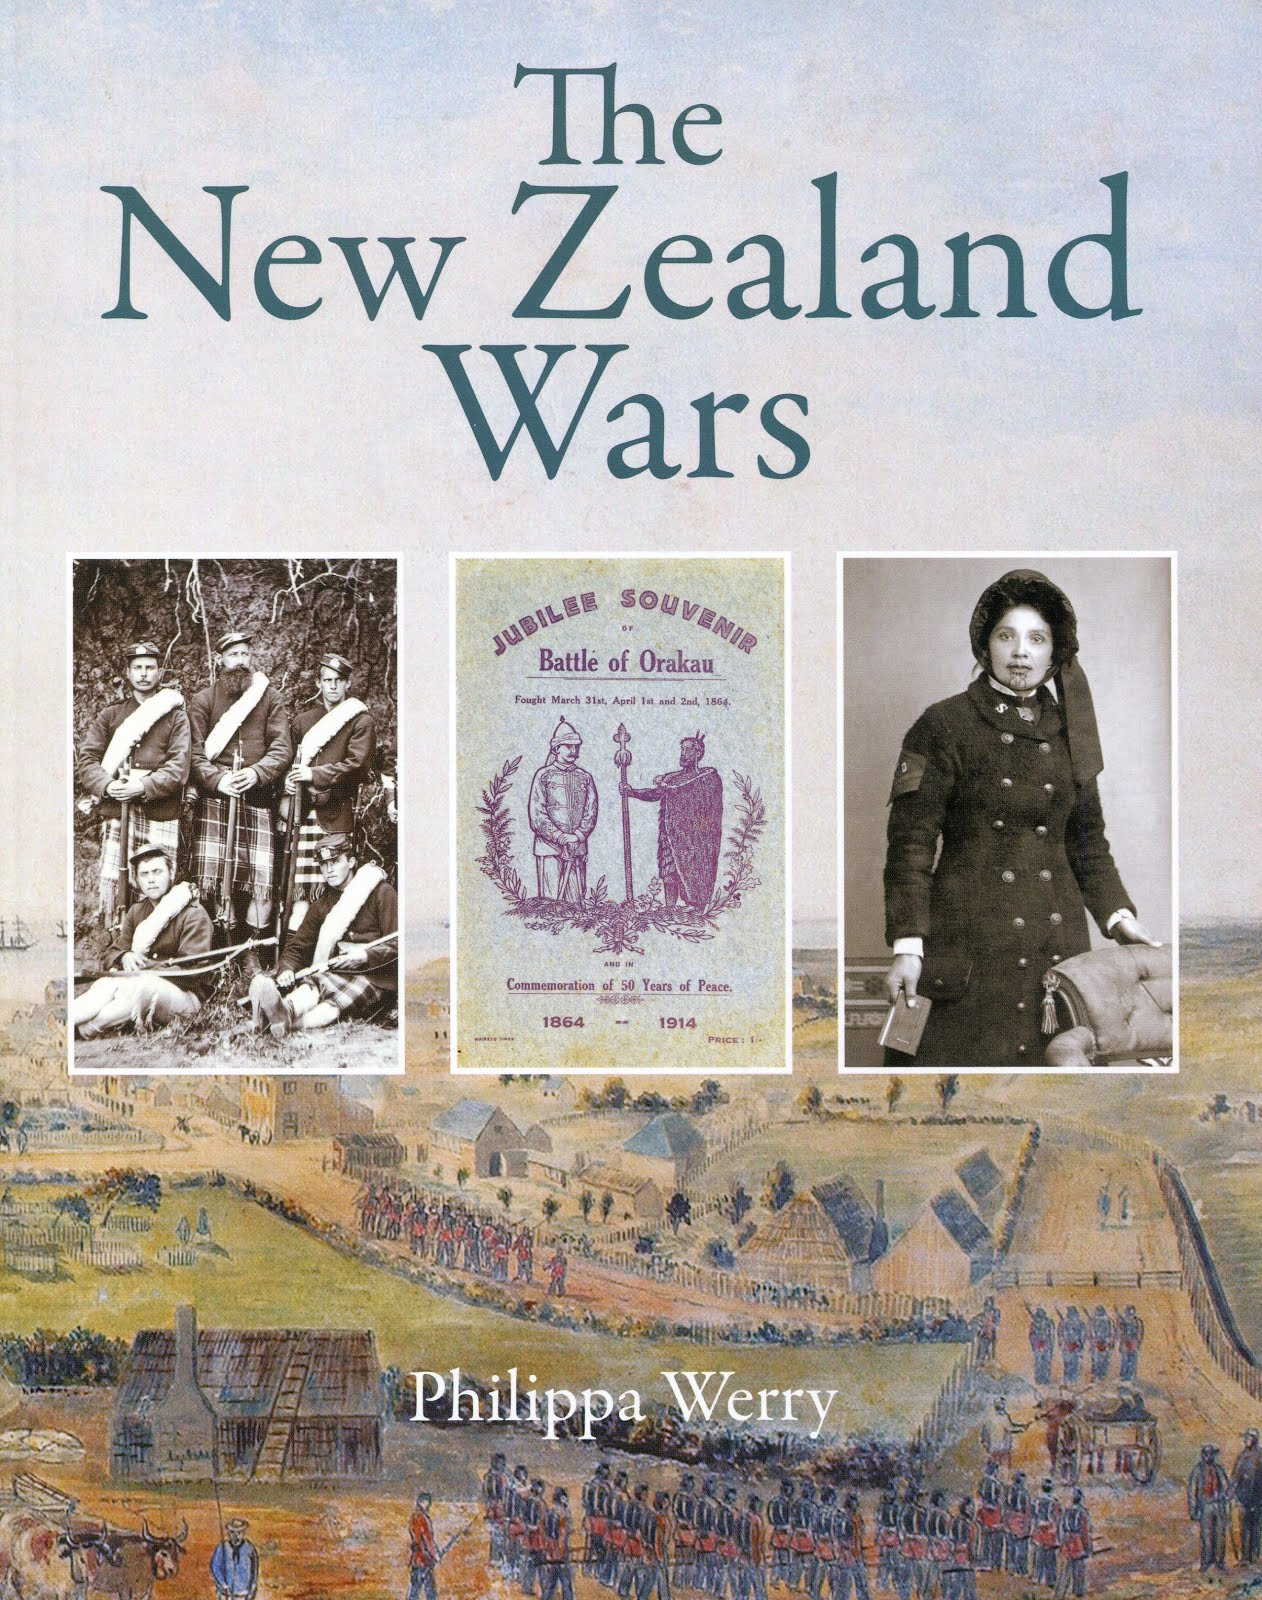 The New Zealand Wars by Philippa Werry (New Holland, 2018)